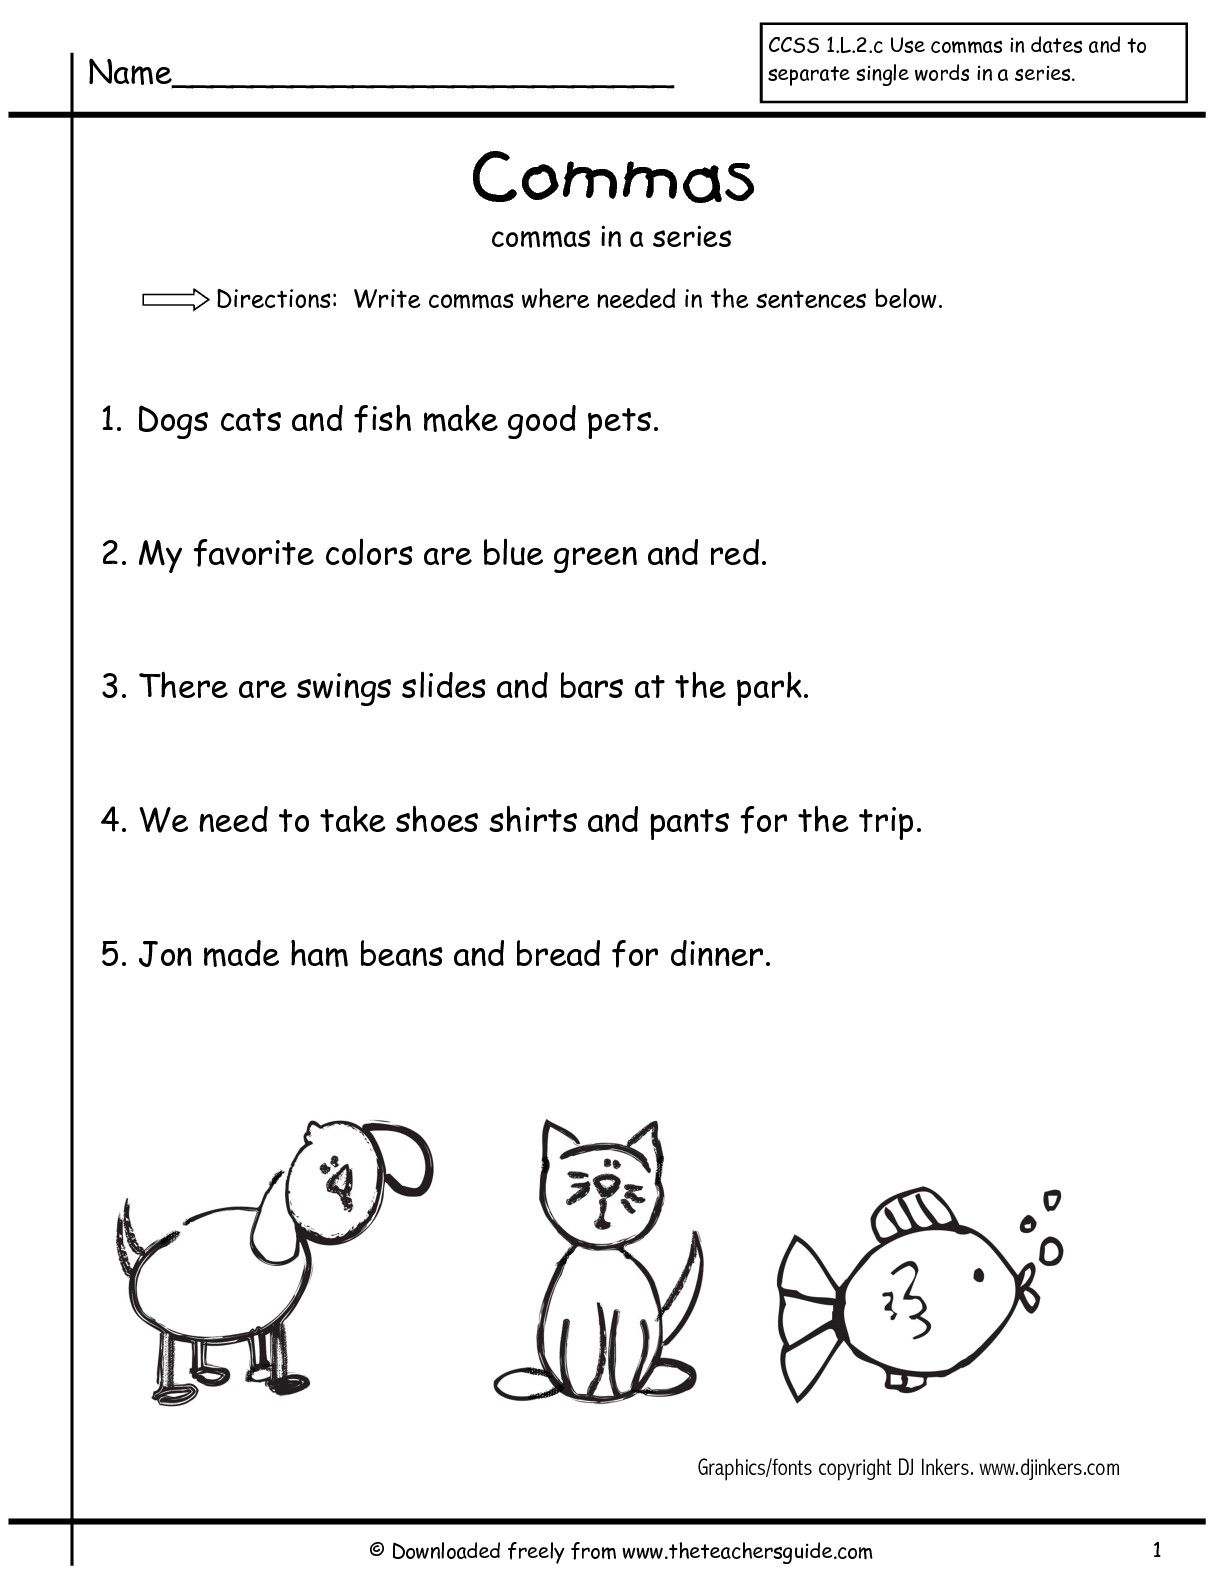 Worksheets Comma Practice Worksheets grammar worksheets commas in a series first grade free comma worksheets